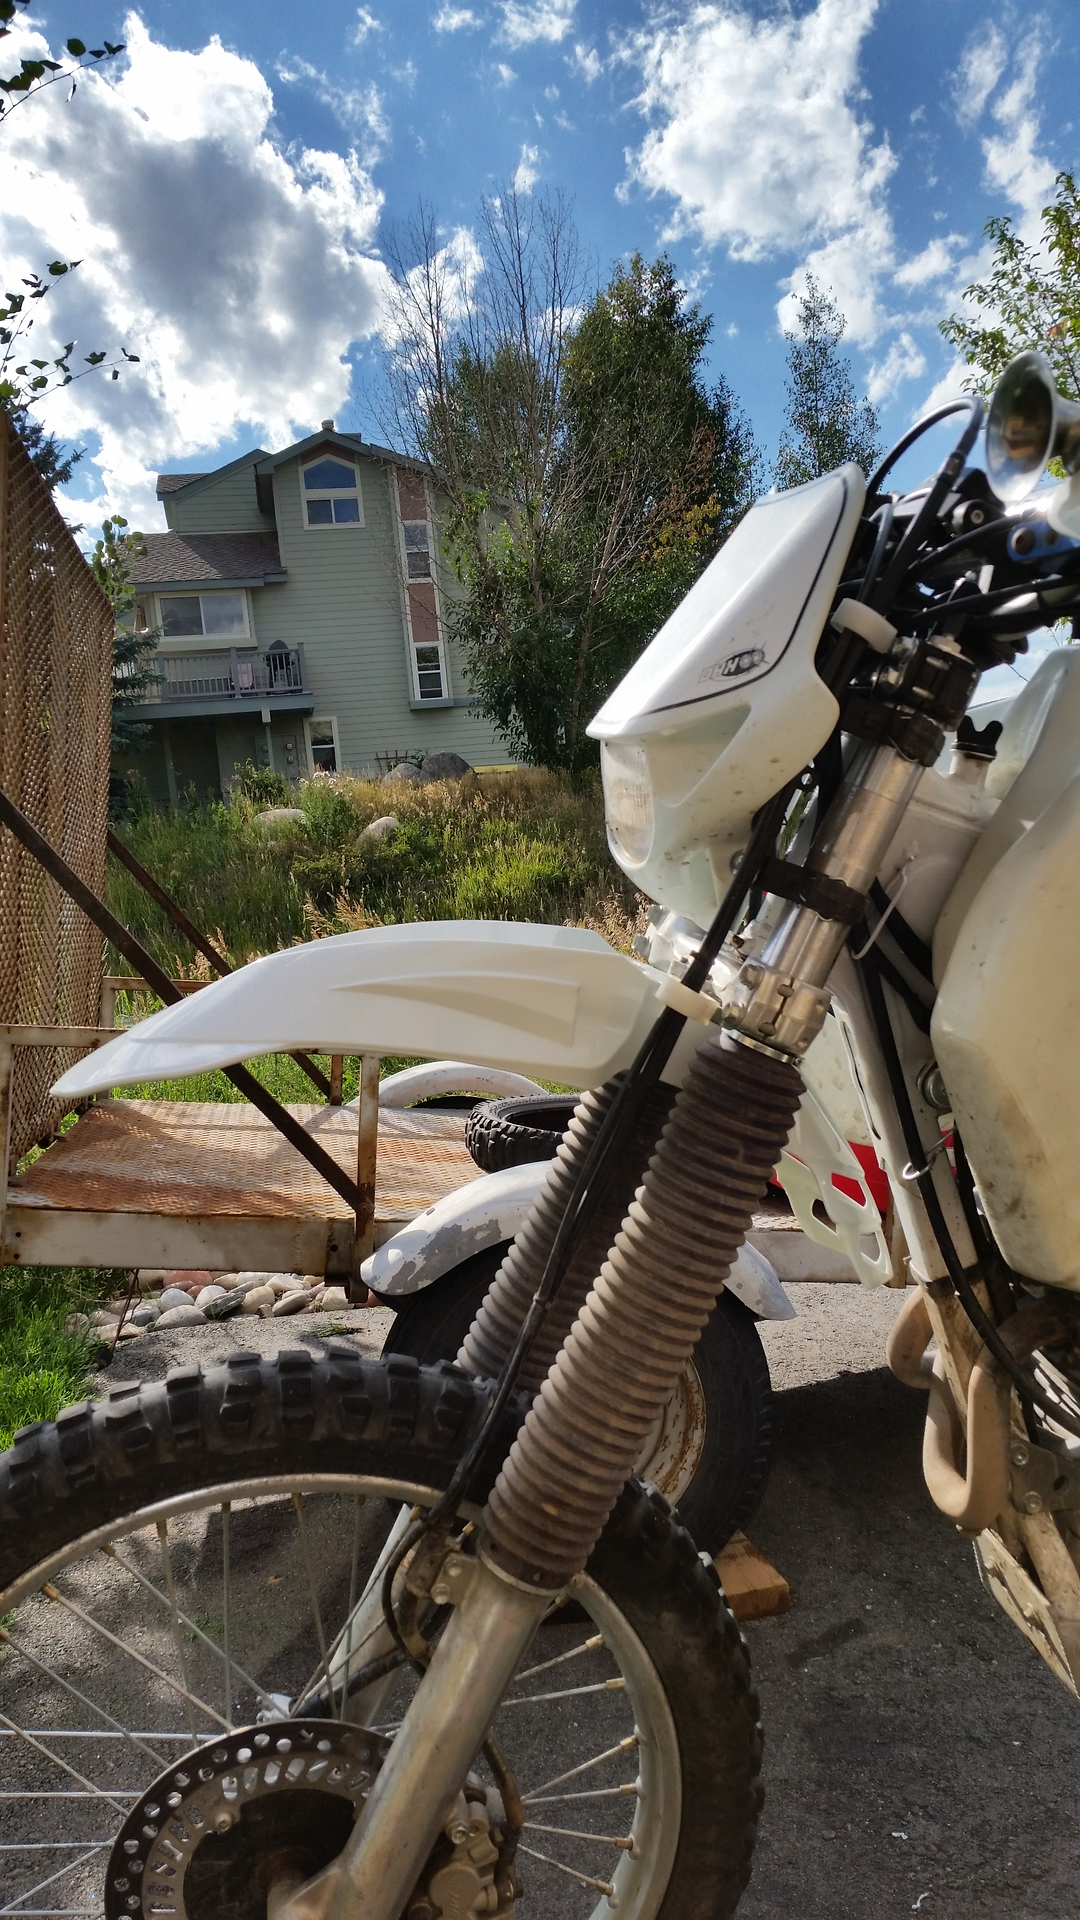 Xr600r Going From Dirt To The Dark Side Thread Nx650 A Simple Wiring Loom Joshua